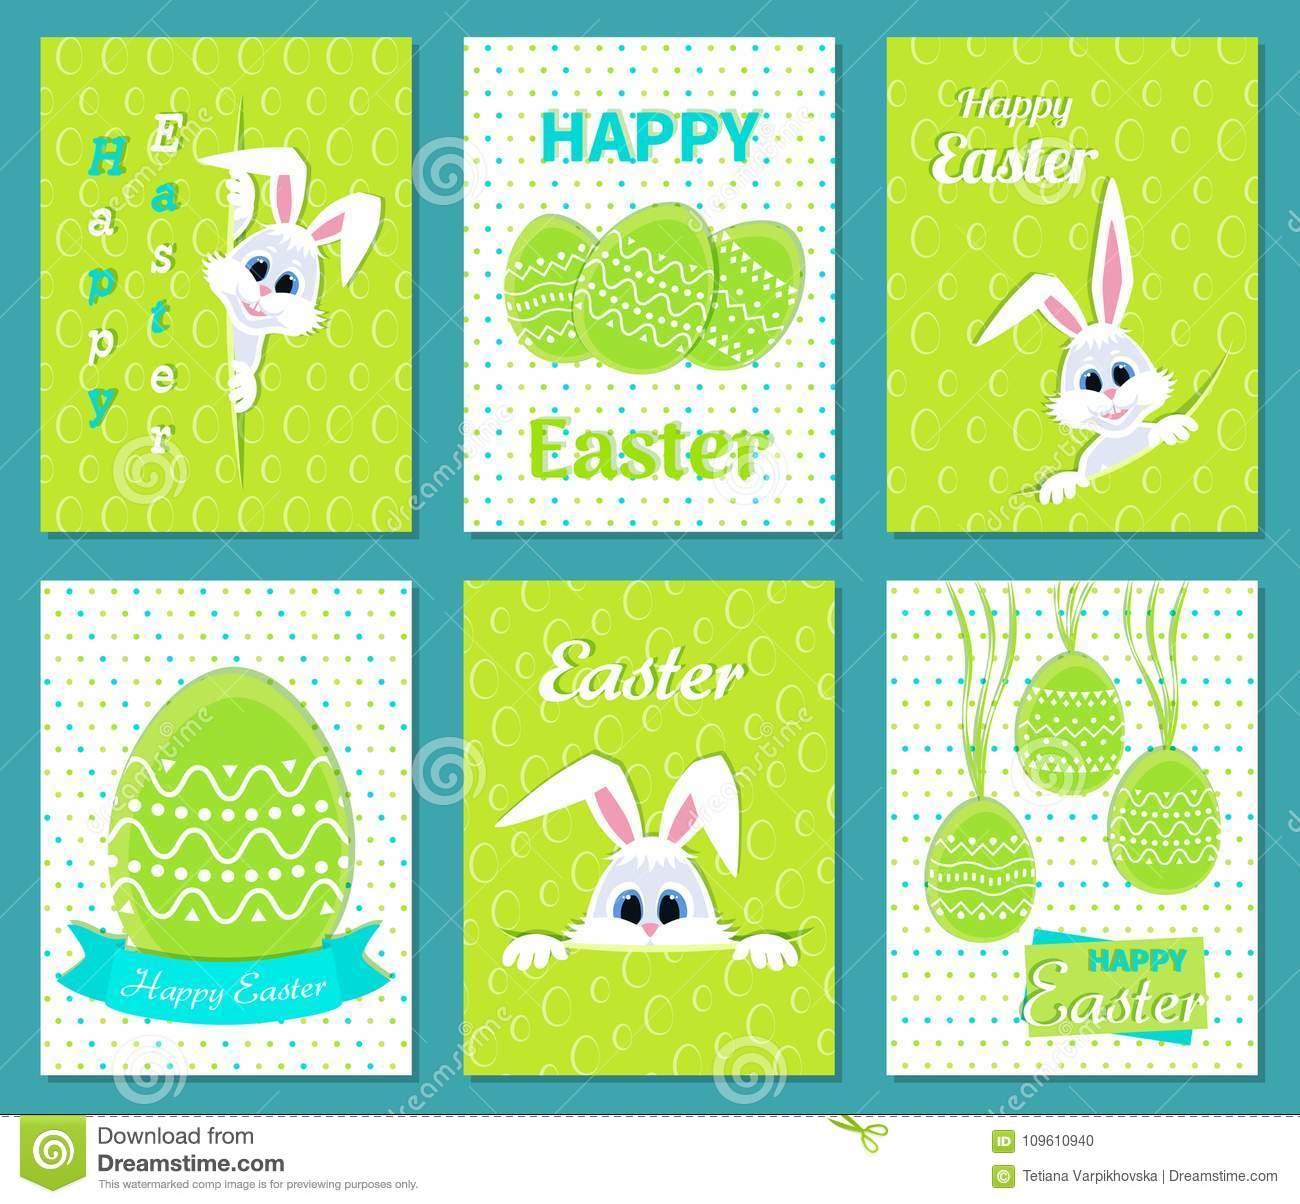 Set Of Happy Easter Greeting Cards White Cute Easter Bunny Peeking